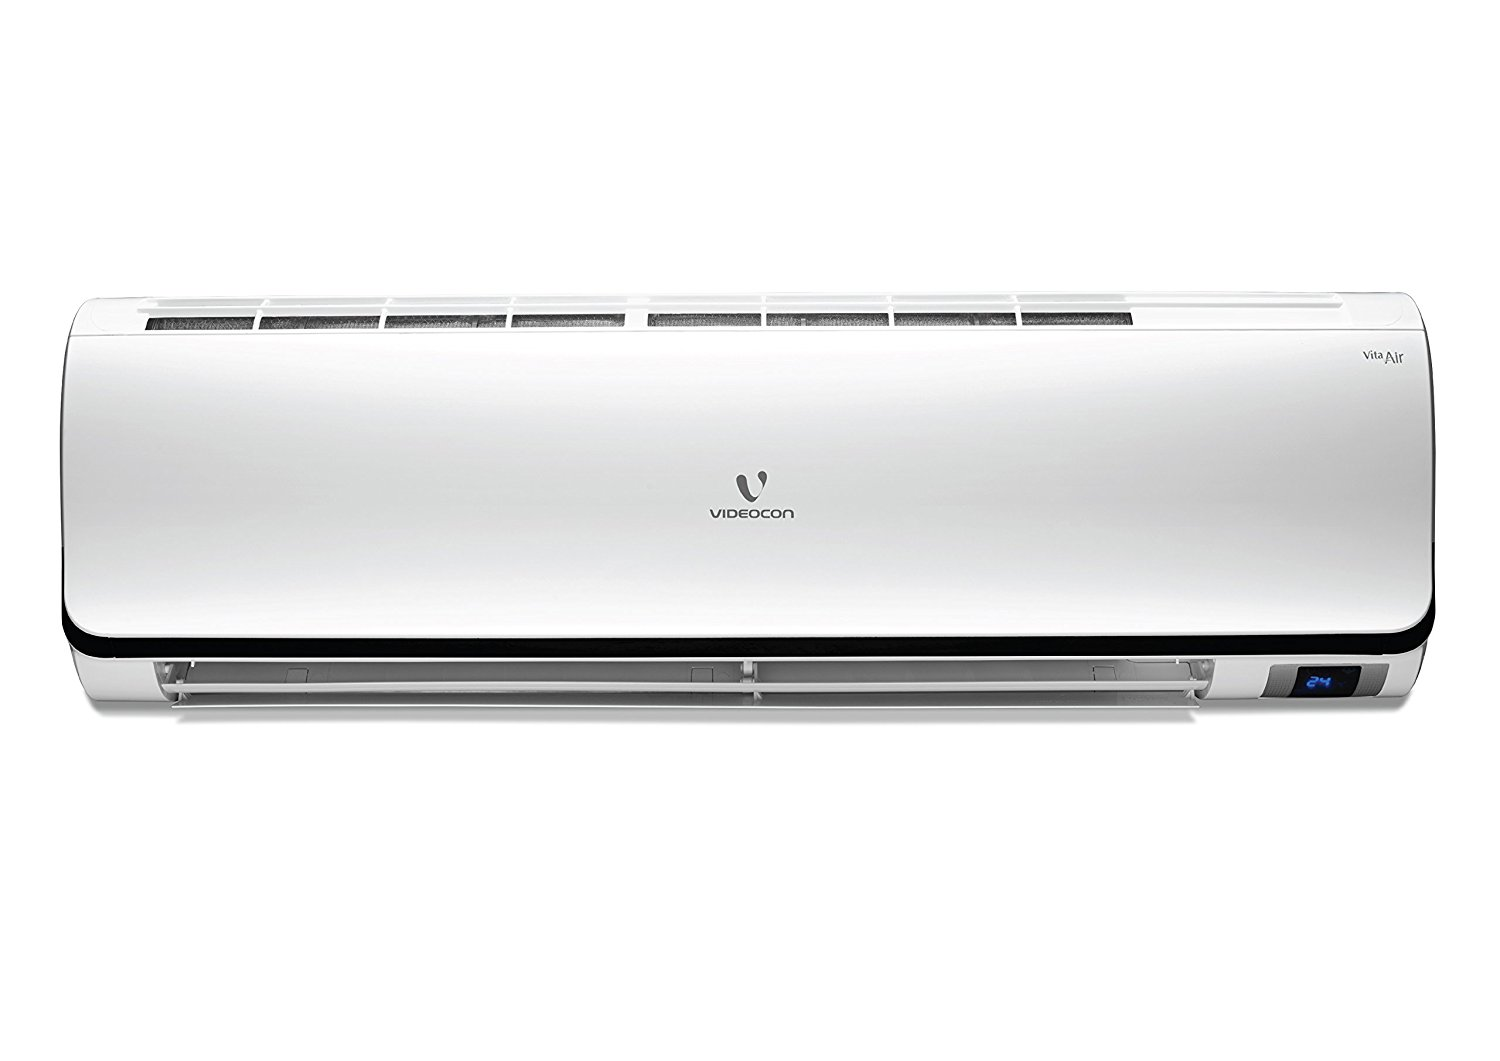 Top 10 Air Conditioner Brands In India For You 2018 List